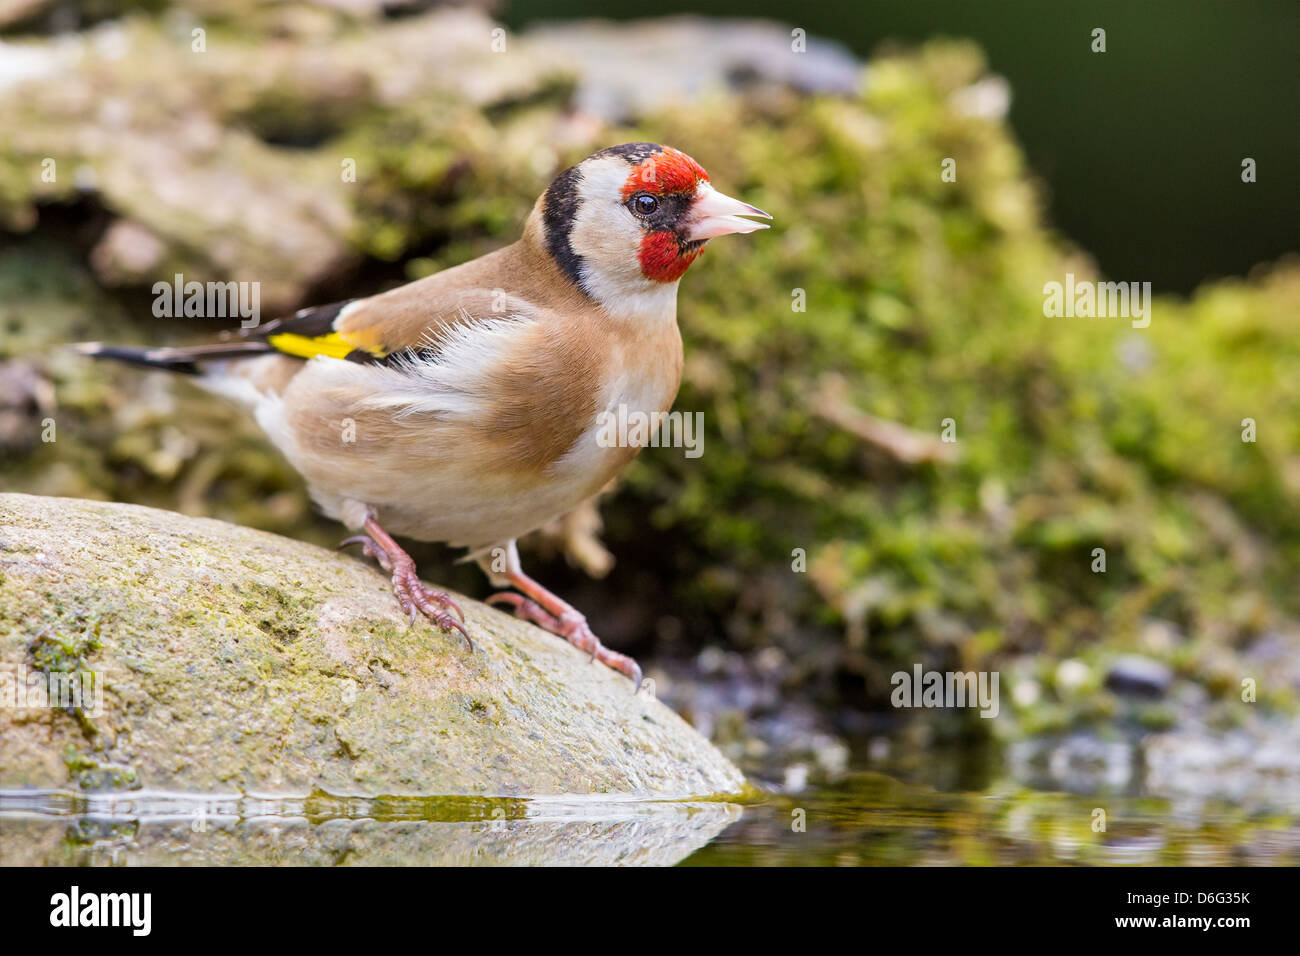 European goldfinch (Carduelis carduelis) standing on a rock at the edge of a stream - Stock Image